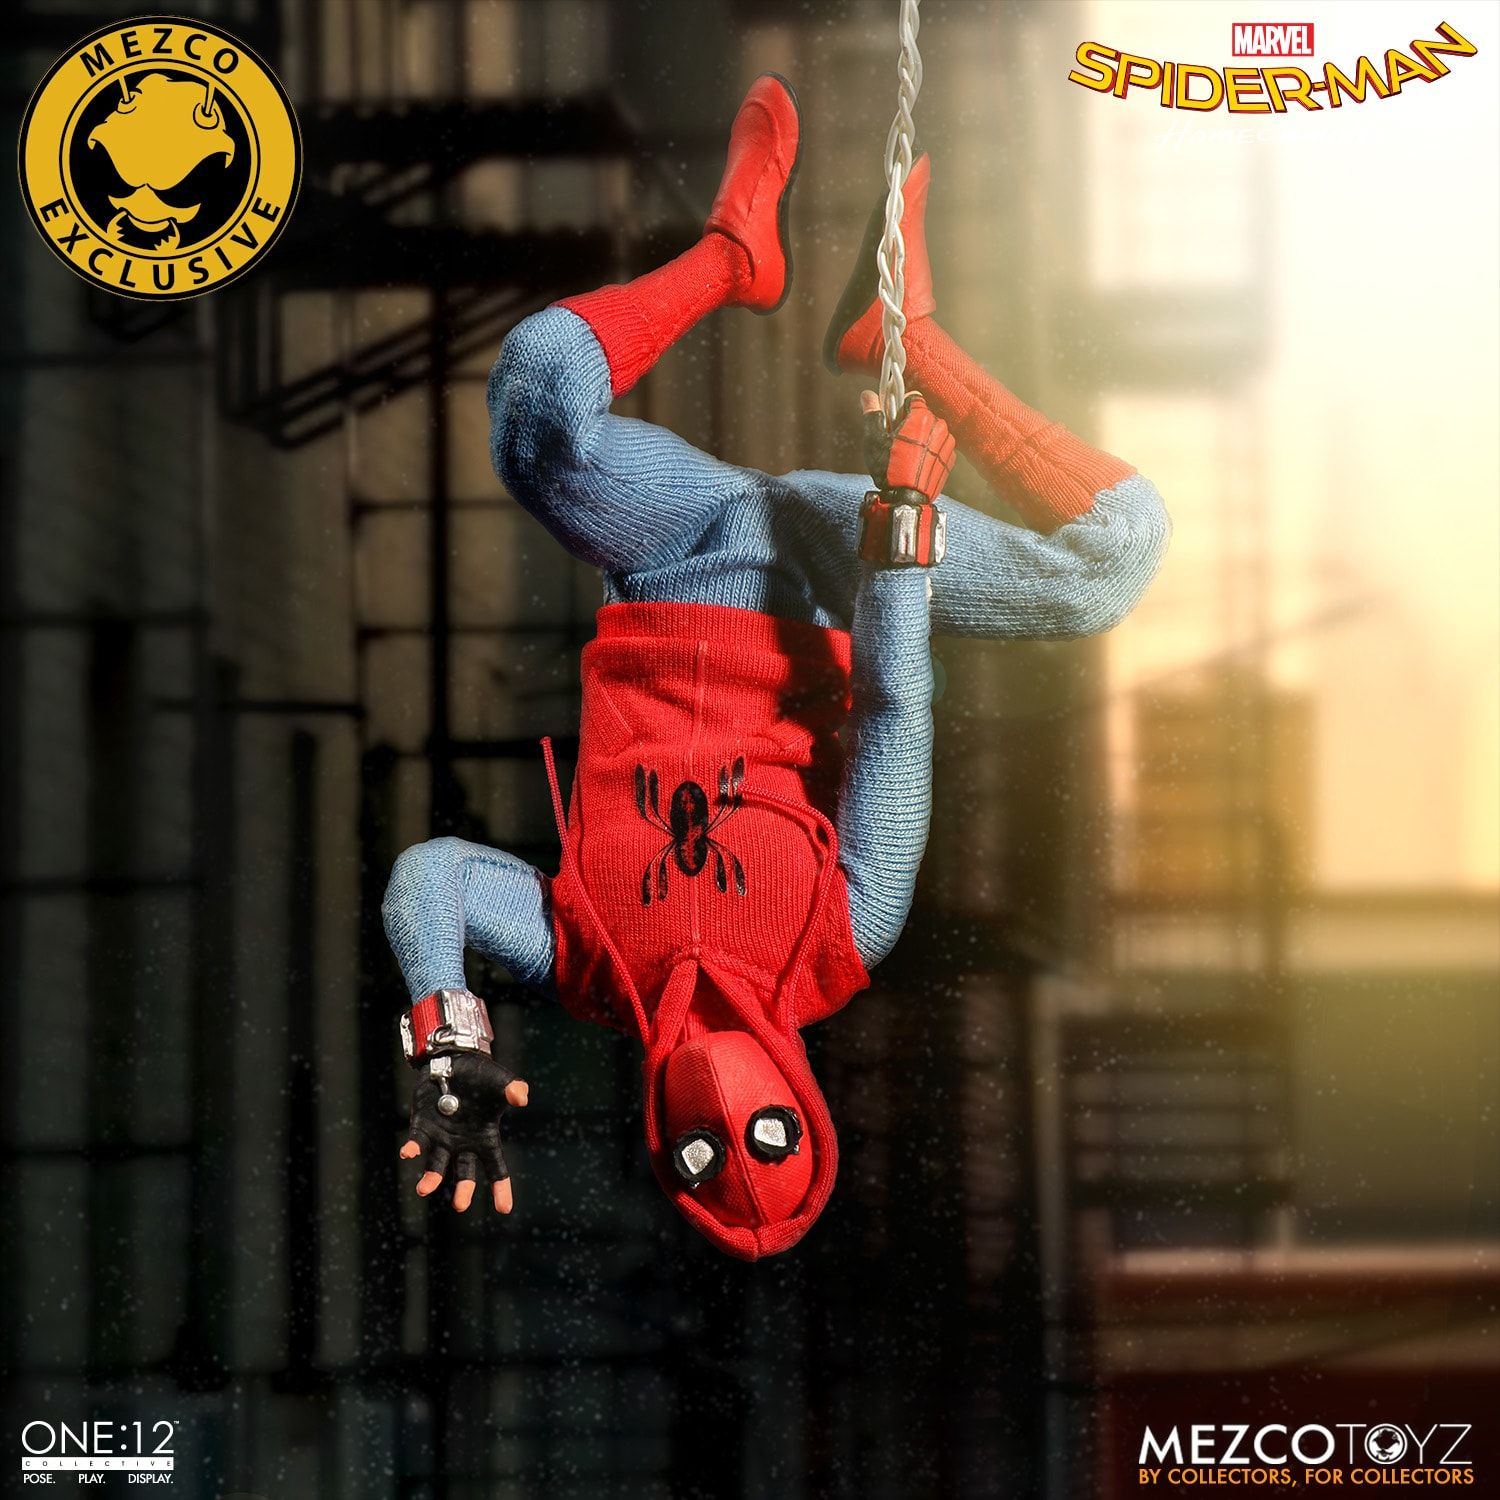 Can't make posts either. Homemade-Suit-Spider-Man-Mezco-ONE12-Collective-Figure-Hanging-Upside-Down